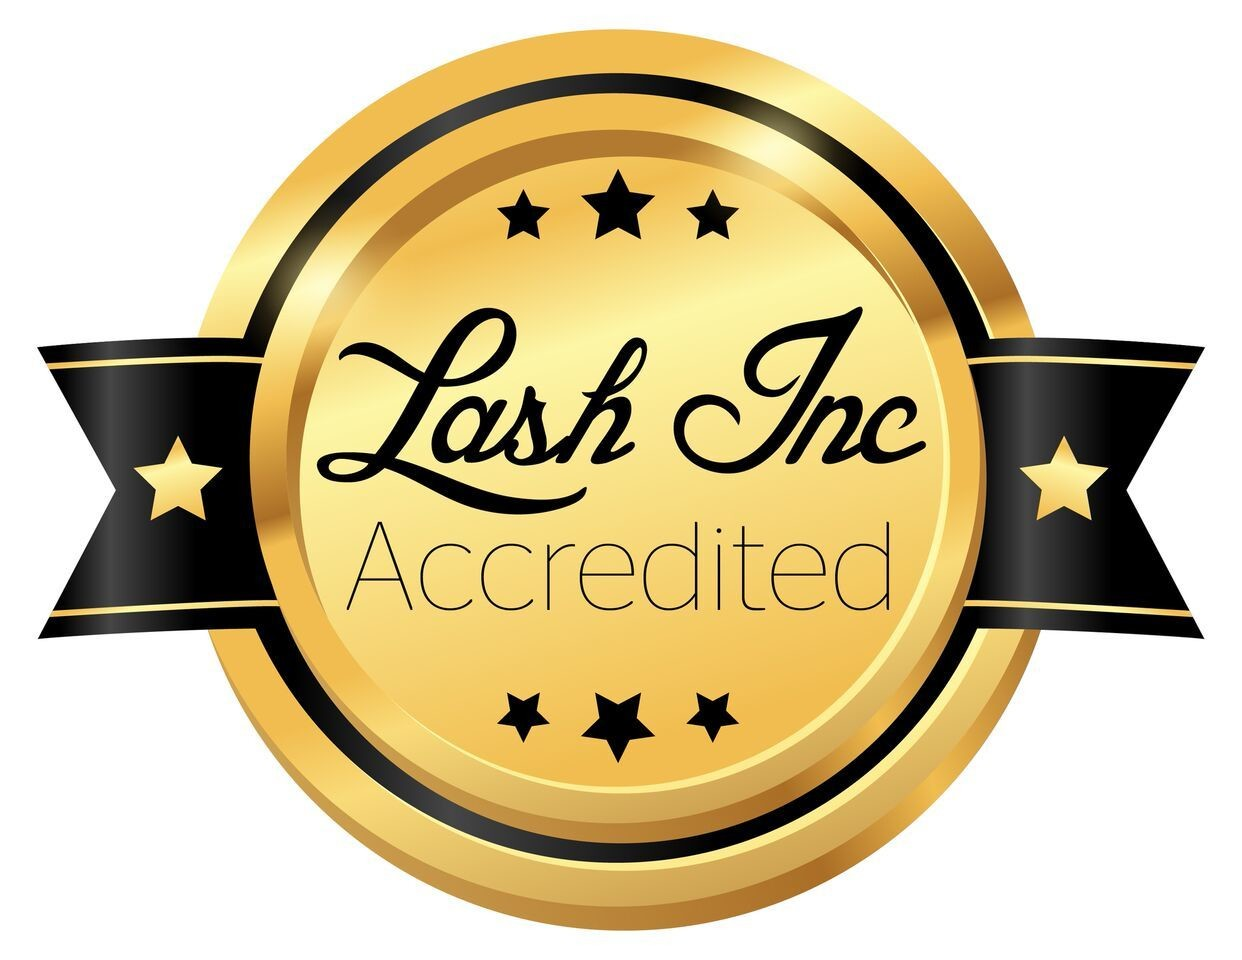 Lash Inc Multiple Course - Accreditation Application Fee